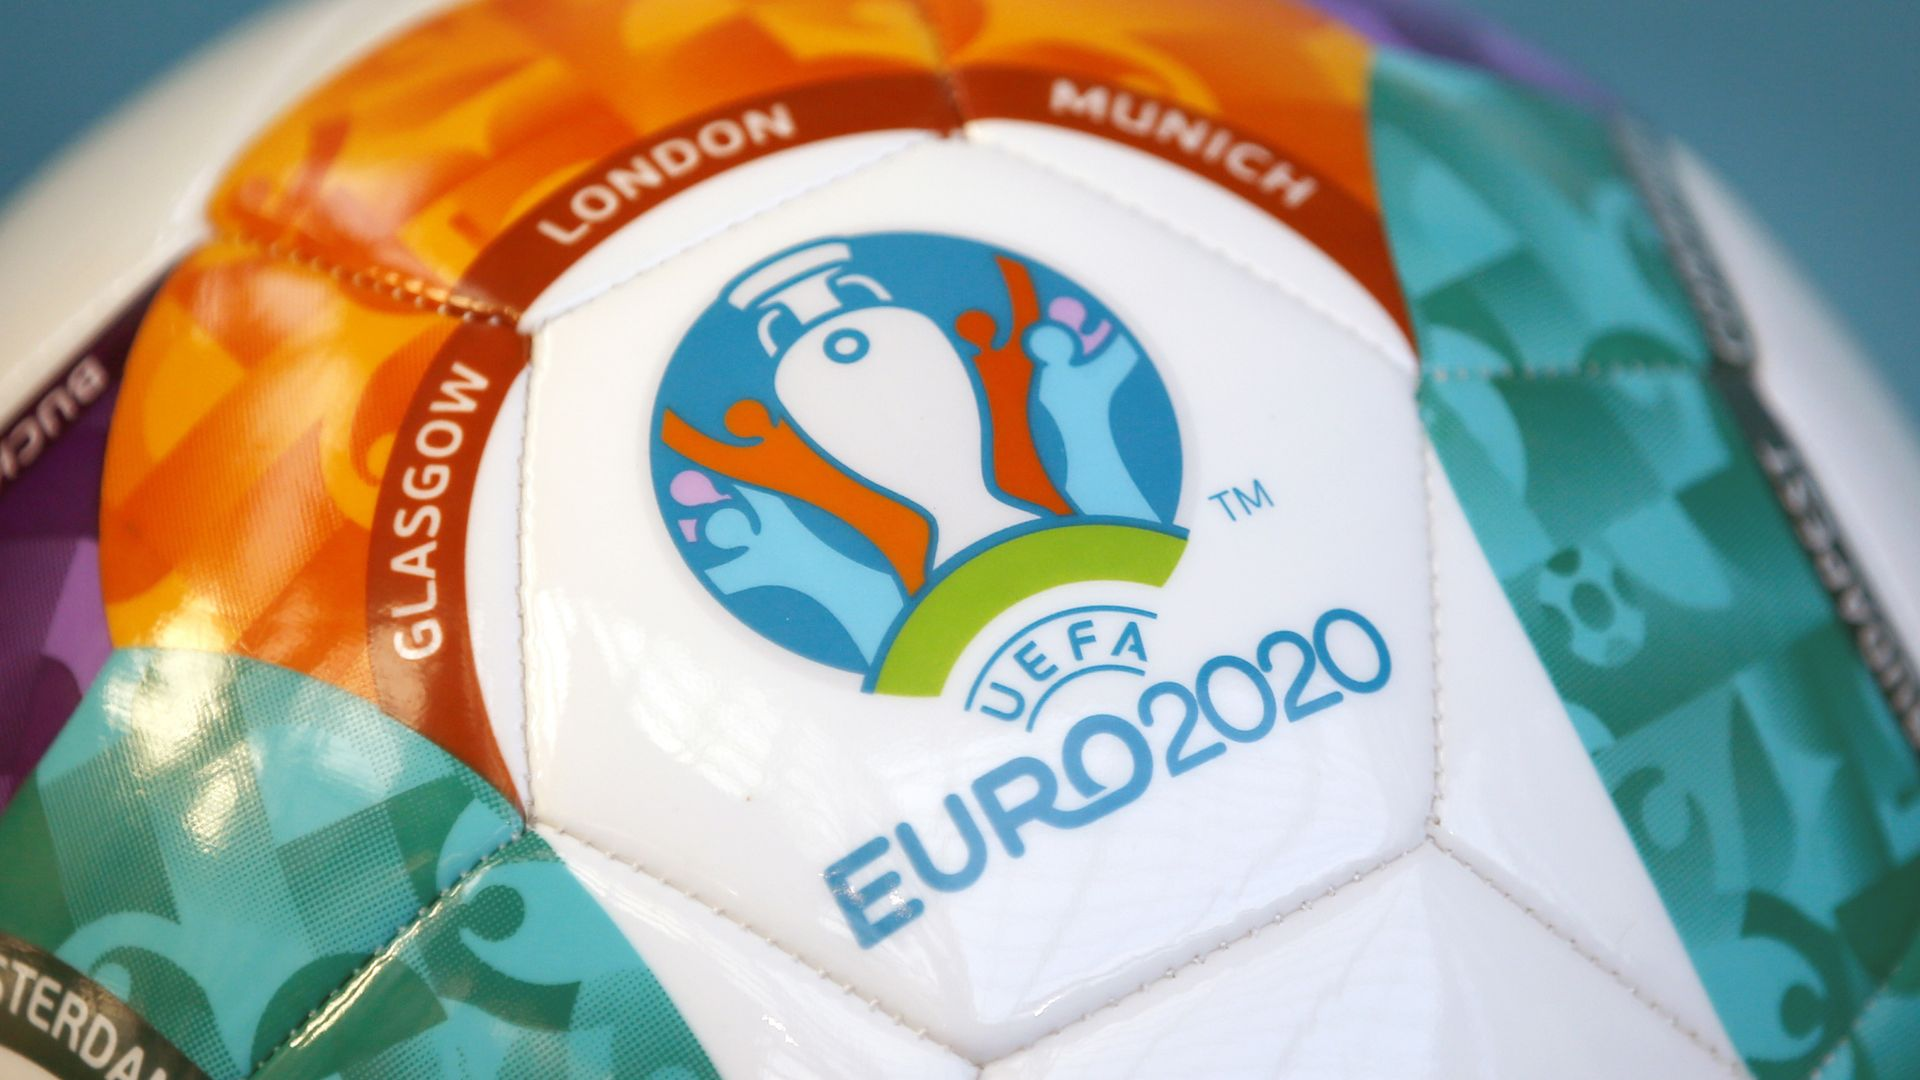 Euros: Fans with tickets may have to reapply